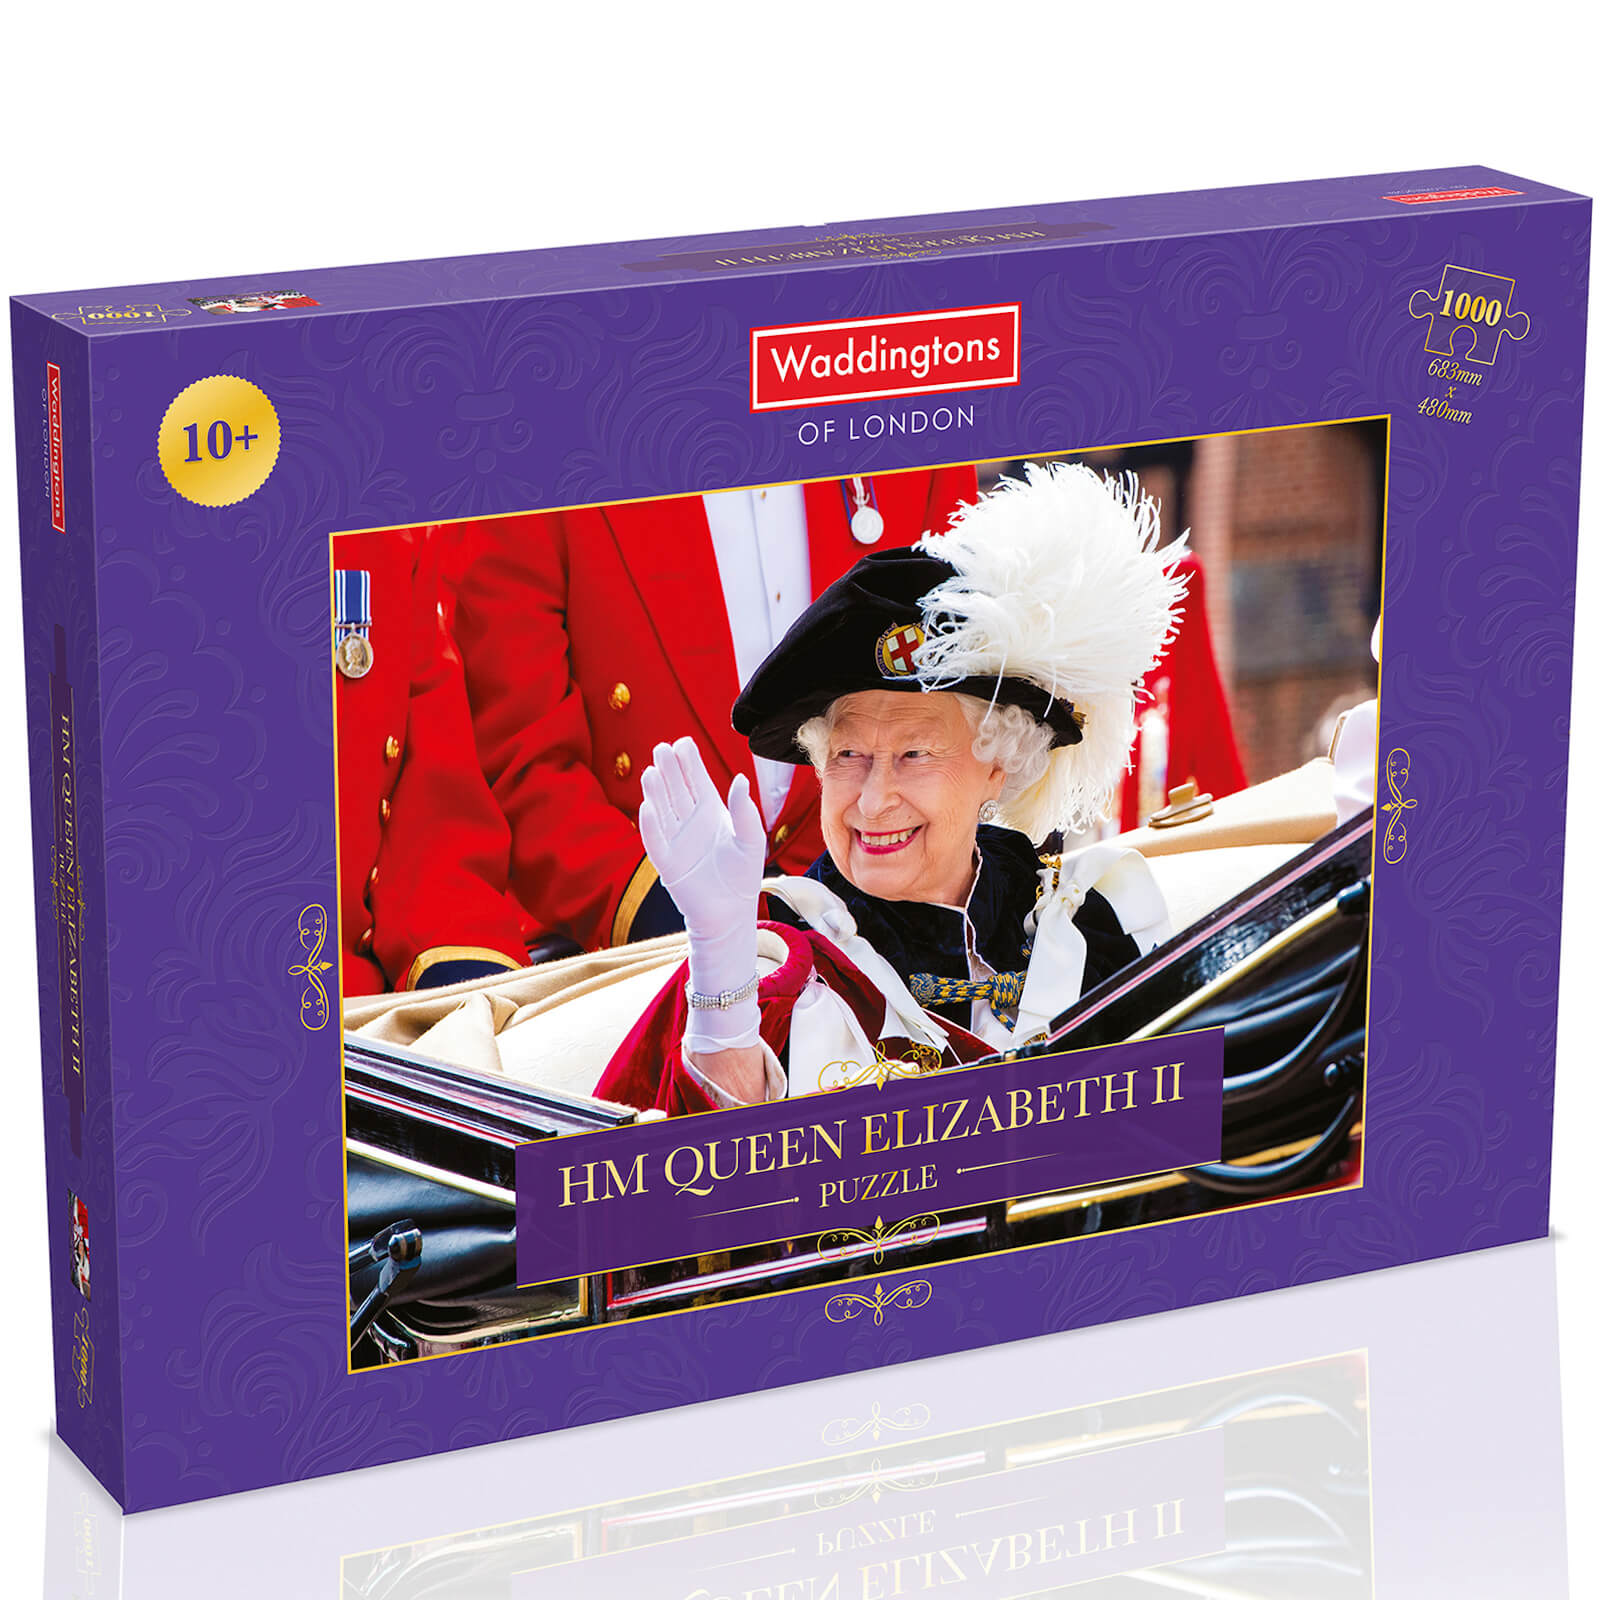 Image of 1000 Piece Jigsaw Puzzle - HM Queen Elizabeth II Edition